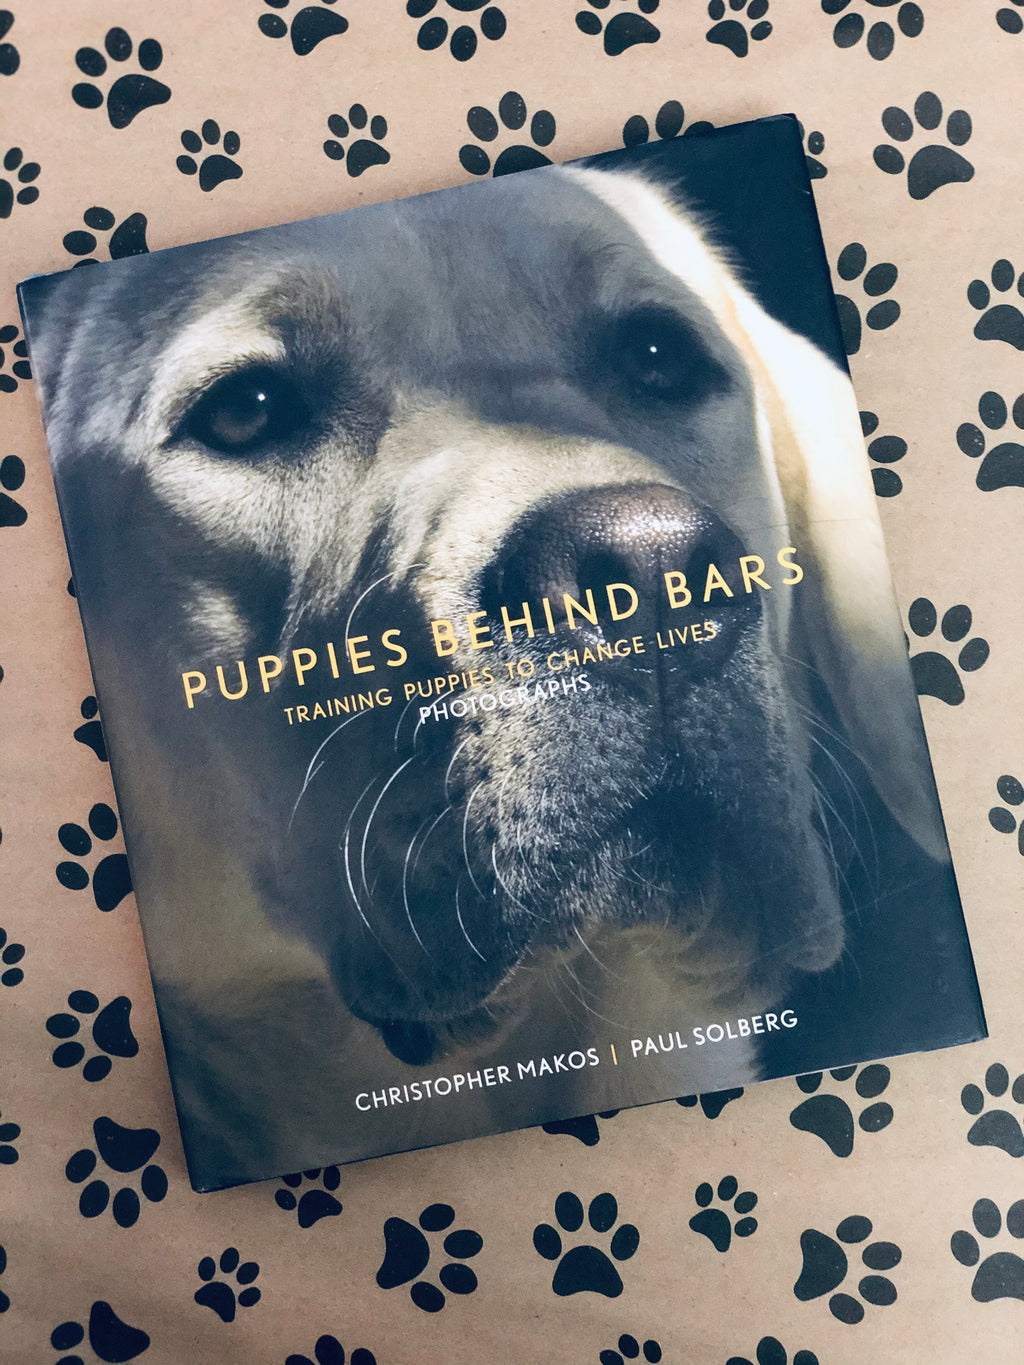 Puppies Behind Bars by Christopher/ Paul Solberg